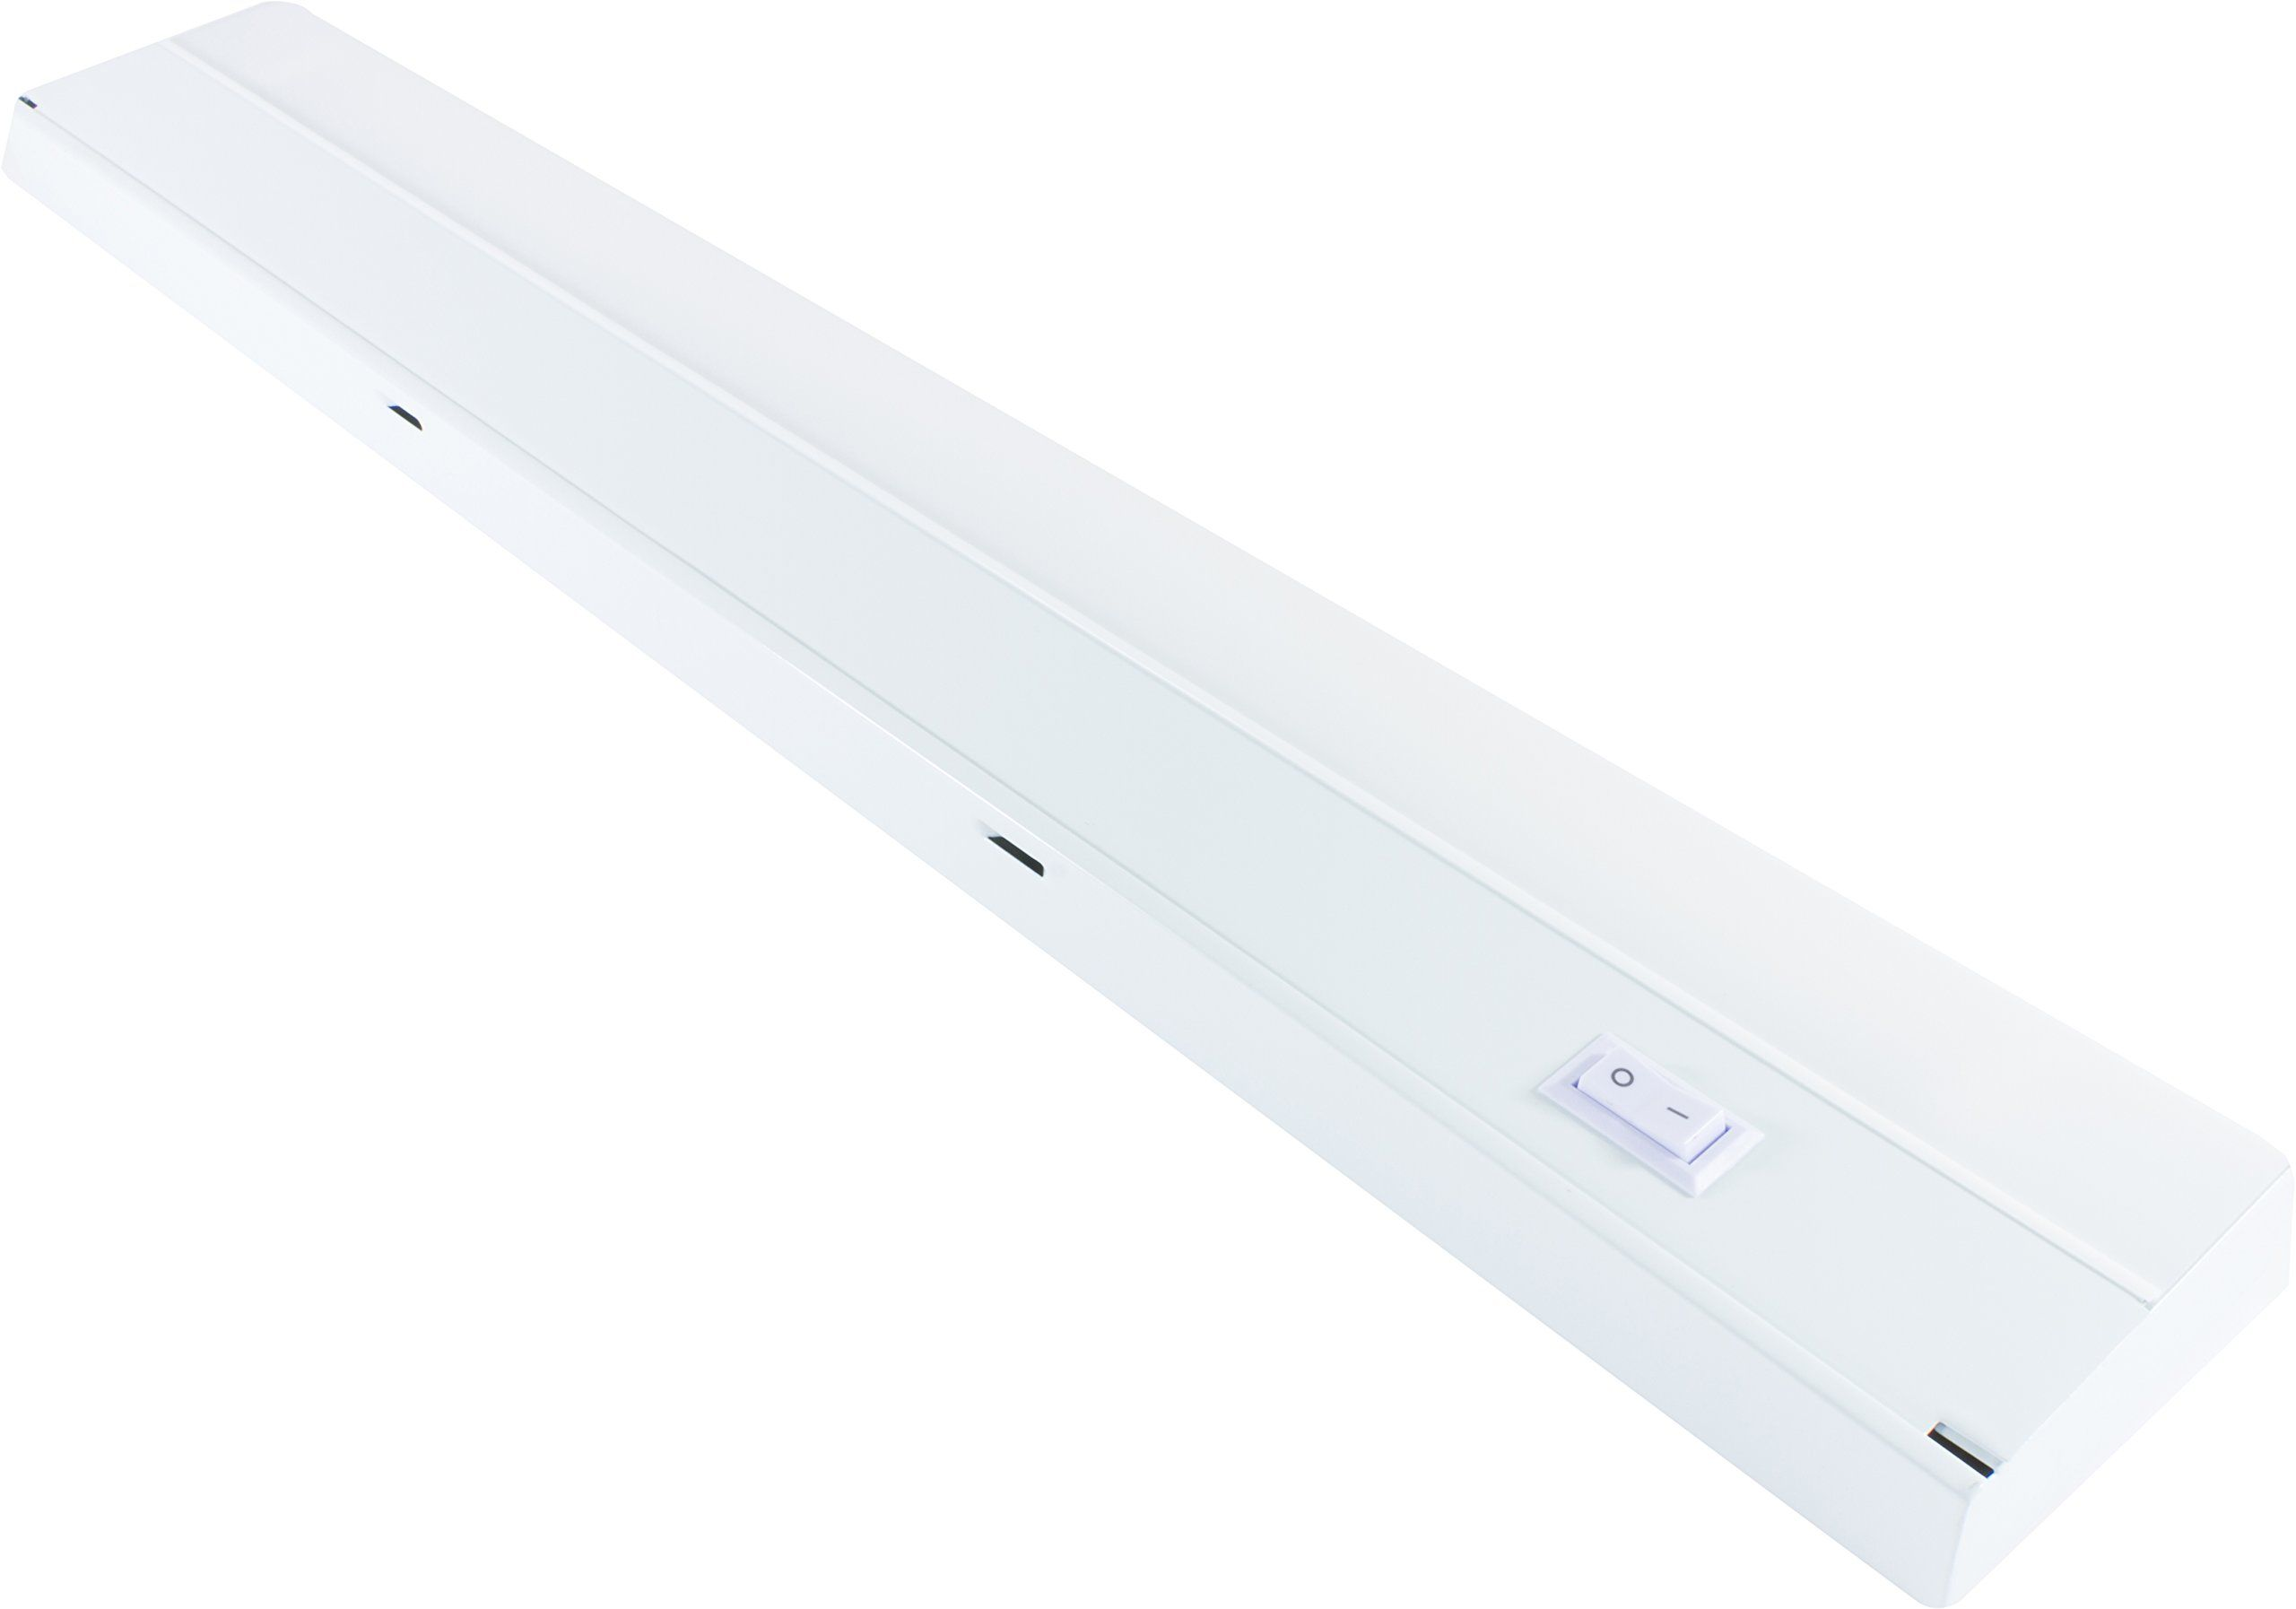 Ge 16687 Premium Fluorescent Light Fixture Direct Wire 24inch Steel Housing Click On The Image With Images Fluorescent Light Fixture Home Office Decor Fluorescent Light